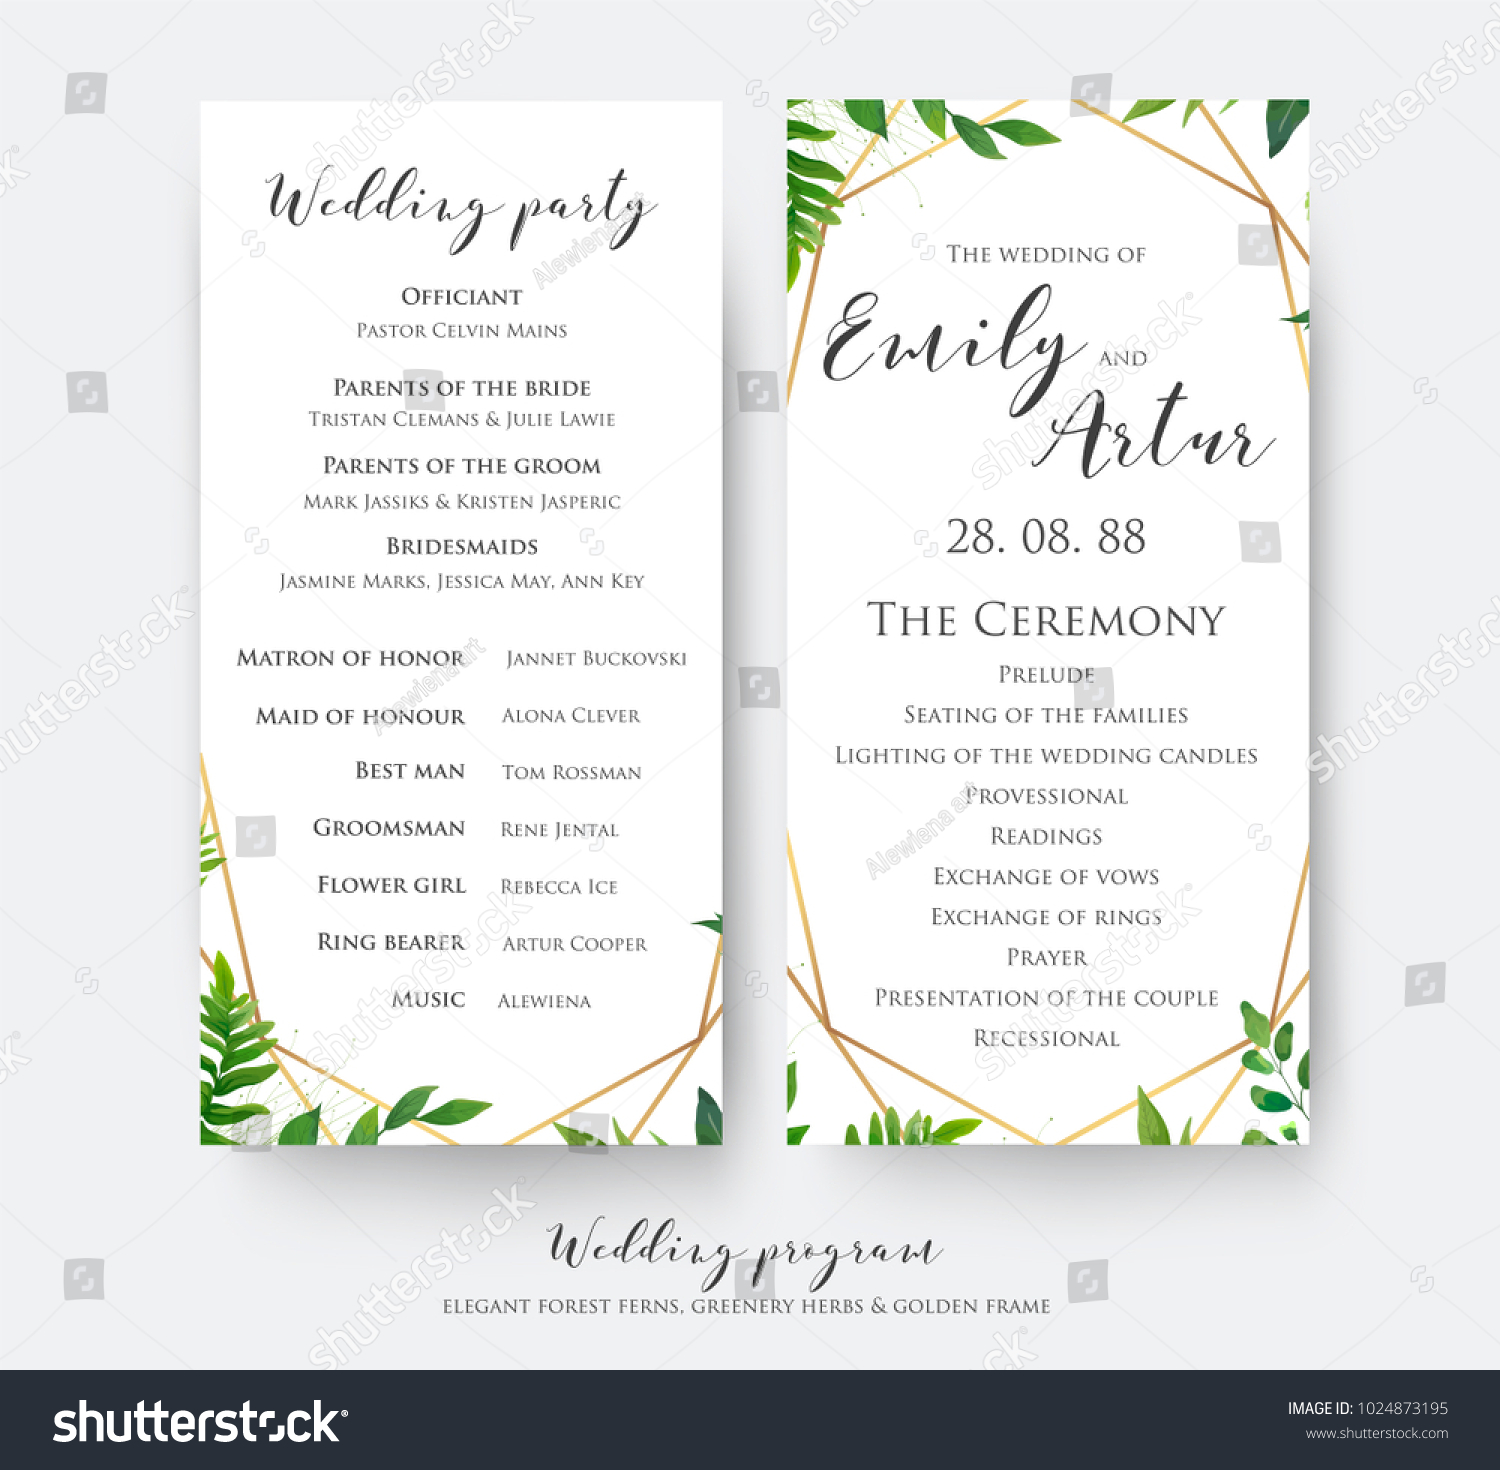 Wedding Program Card Ceremony Party Modern Stock Vector (Royalty ...